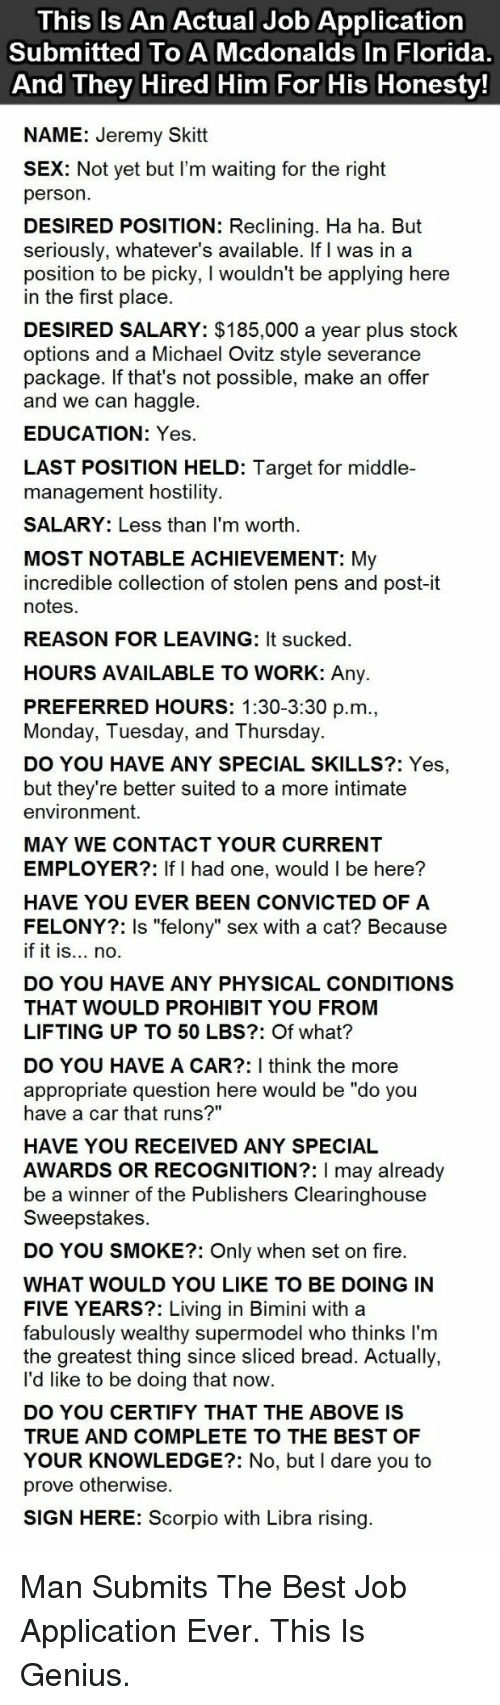 "Job Application: This Is An Actual Job Application  Submitted To A Mcdonalds In Florida  And They Hired Him For His Honesty  NAME: Jeremy Skitt  X: Not yet but I'm waiting for the right  person  DESIRED POSITION: Reclining. Ha ha. But  seriously, whatever's available. If I was in a  position to be picky, I wouldn't be applying here  in the first place  DESIRED SALARY: $185,000 a year plus stock  options and a Michael Ovitz style severance  package. If that's not possible, make an offer  and we can haggle.  EDUCATION: Yes  LAST POSITION HELD: Target for middle-  management hostility  SALARY: Less than I'm worth  MOST NOTABLE ACHIEVEMENT: My  incredible collection of stolen pens and post-it  notes  REASON FOR LEAVING: It sucked  HOURS AVAILABLE TO WORK: Any.  PREFERRED HOURS: 1:30-3:30 p.m  Monday, Tuesday, and Thursday.  DO YOU HAVE ANY SPECIAL SKILLS?: Yes,  but they're better suited to a more intimate  environment.  MAY WE CONTACT YOUR CURRENT  EMPLOYER?: If I had one, would I be here?  HAVE YOU EVER BEEN CONVICTED OF A  FELONY?: Is ""felony"" sex with a cat? Because  if it is... no.  DO YOU HAVE ANY PHYSICAL CONDITIONS  THAT WOULD PROHIBIT YOU FROM  LIFTING UP TO 50 LBS?: Of what?  DO YOU HAVE A CAR?: I think the more  appropriate question here would be ""do you  have a car that runs?""  HAVE YOU RECEIVED ANY SPECIAL  AWARDS OR RECOGNITION?: I may already  be a winner of the Publishers Clearinghouse  Sweepstakes  DO YOU SMOKE?: Only when set on fire  WHAT WOULD YOU LIKE TO BE DOING IN  FIVE YEARS?: Living in Bimini with a  fabulously wealthy supermodel who thinks I'm  the greatest thing since sliced bread. Actually,  l'd like to be doing that now  DO YOU CERTIFY THAT THE ABOVE IS  TRUE AND COMPLETE TO THE BEST OF  YOUR KNOWLEDGE?: No, but I dare you to  prove otherwise  SIGN HERE: Scorpio with Libra rising <p>Man Submits The Best Job Application Ever. This Is Genius.</p>"